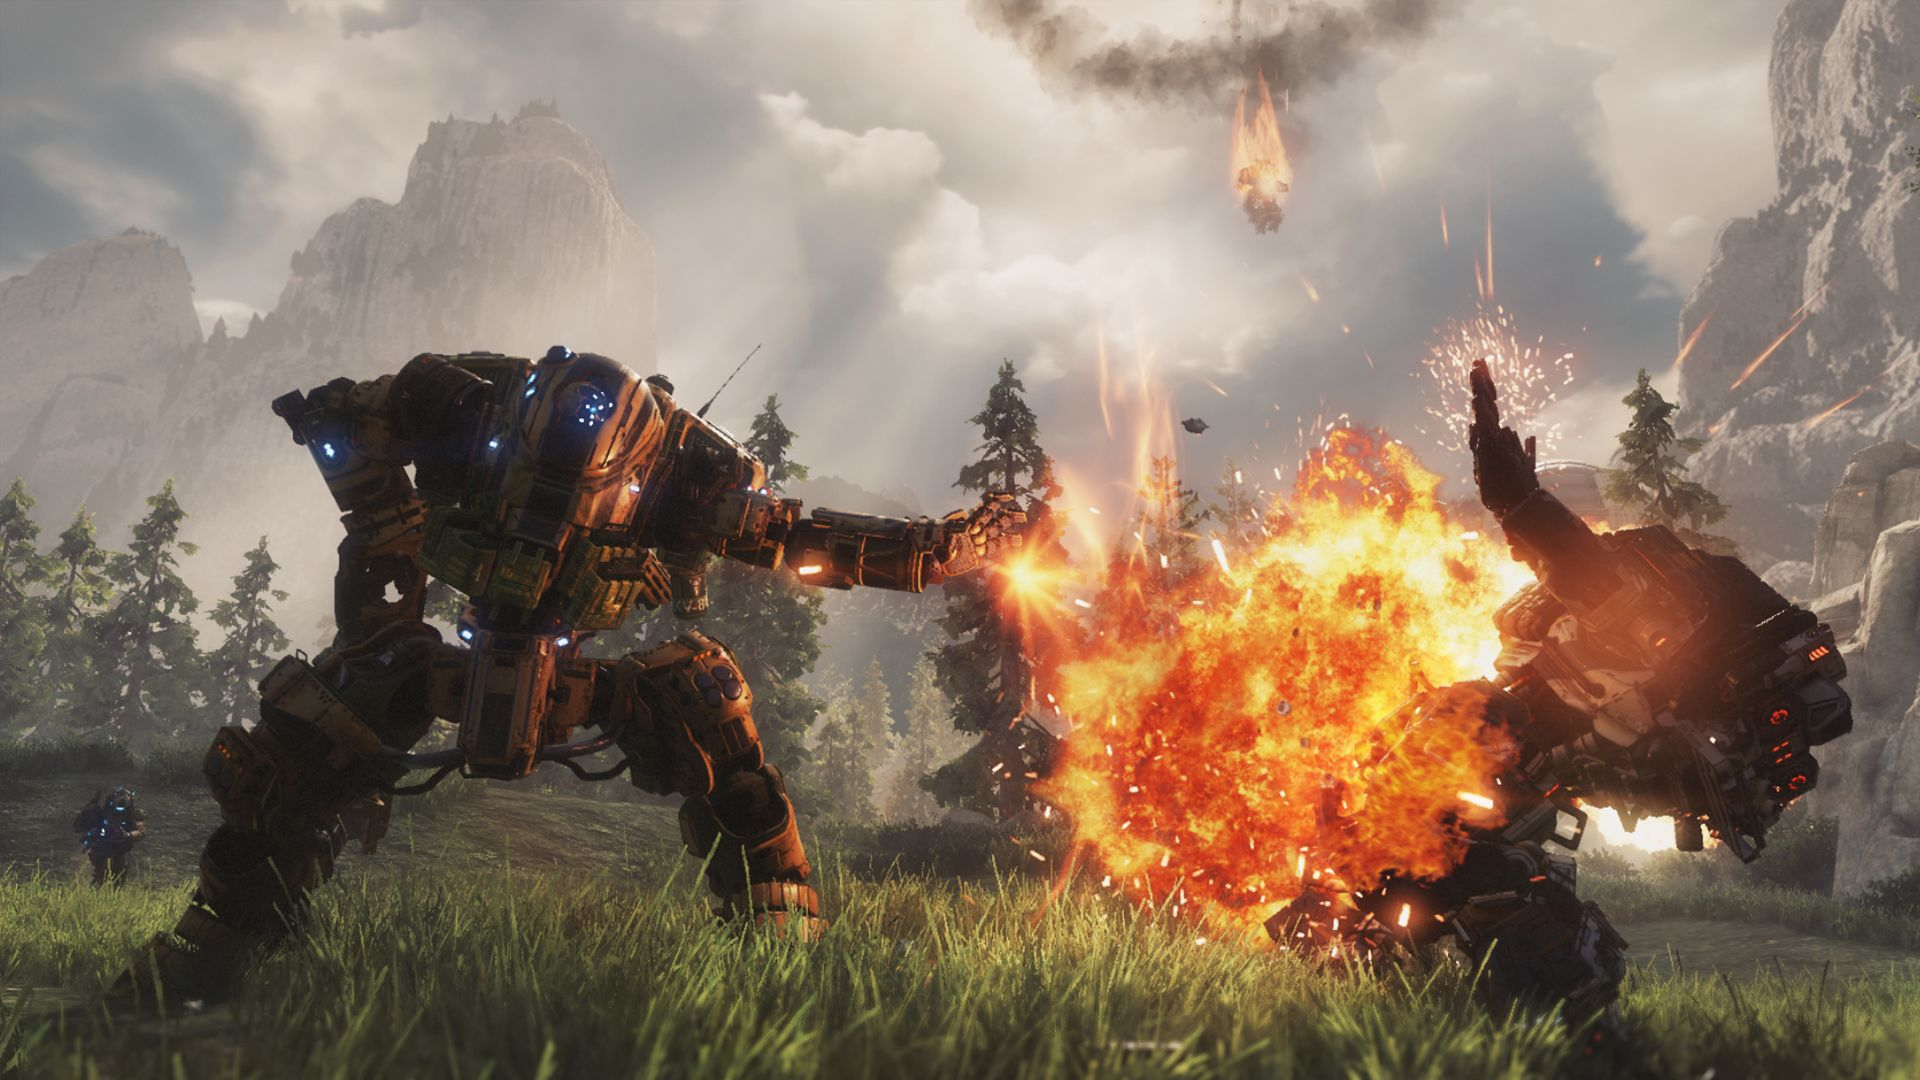 download titanfall 2-codex cracked full version singlelink iso rar multi language free for pc